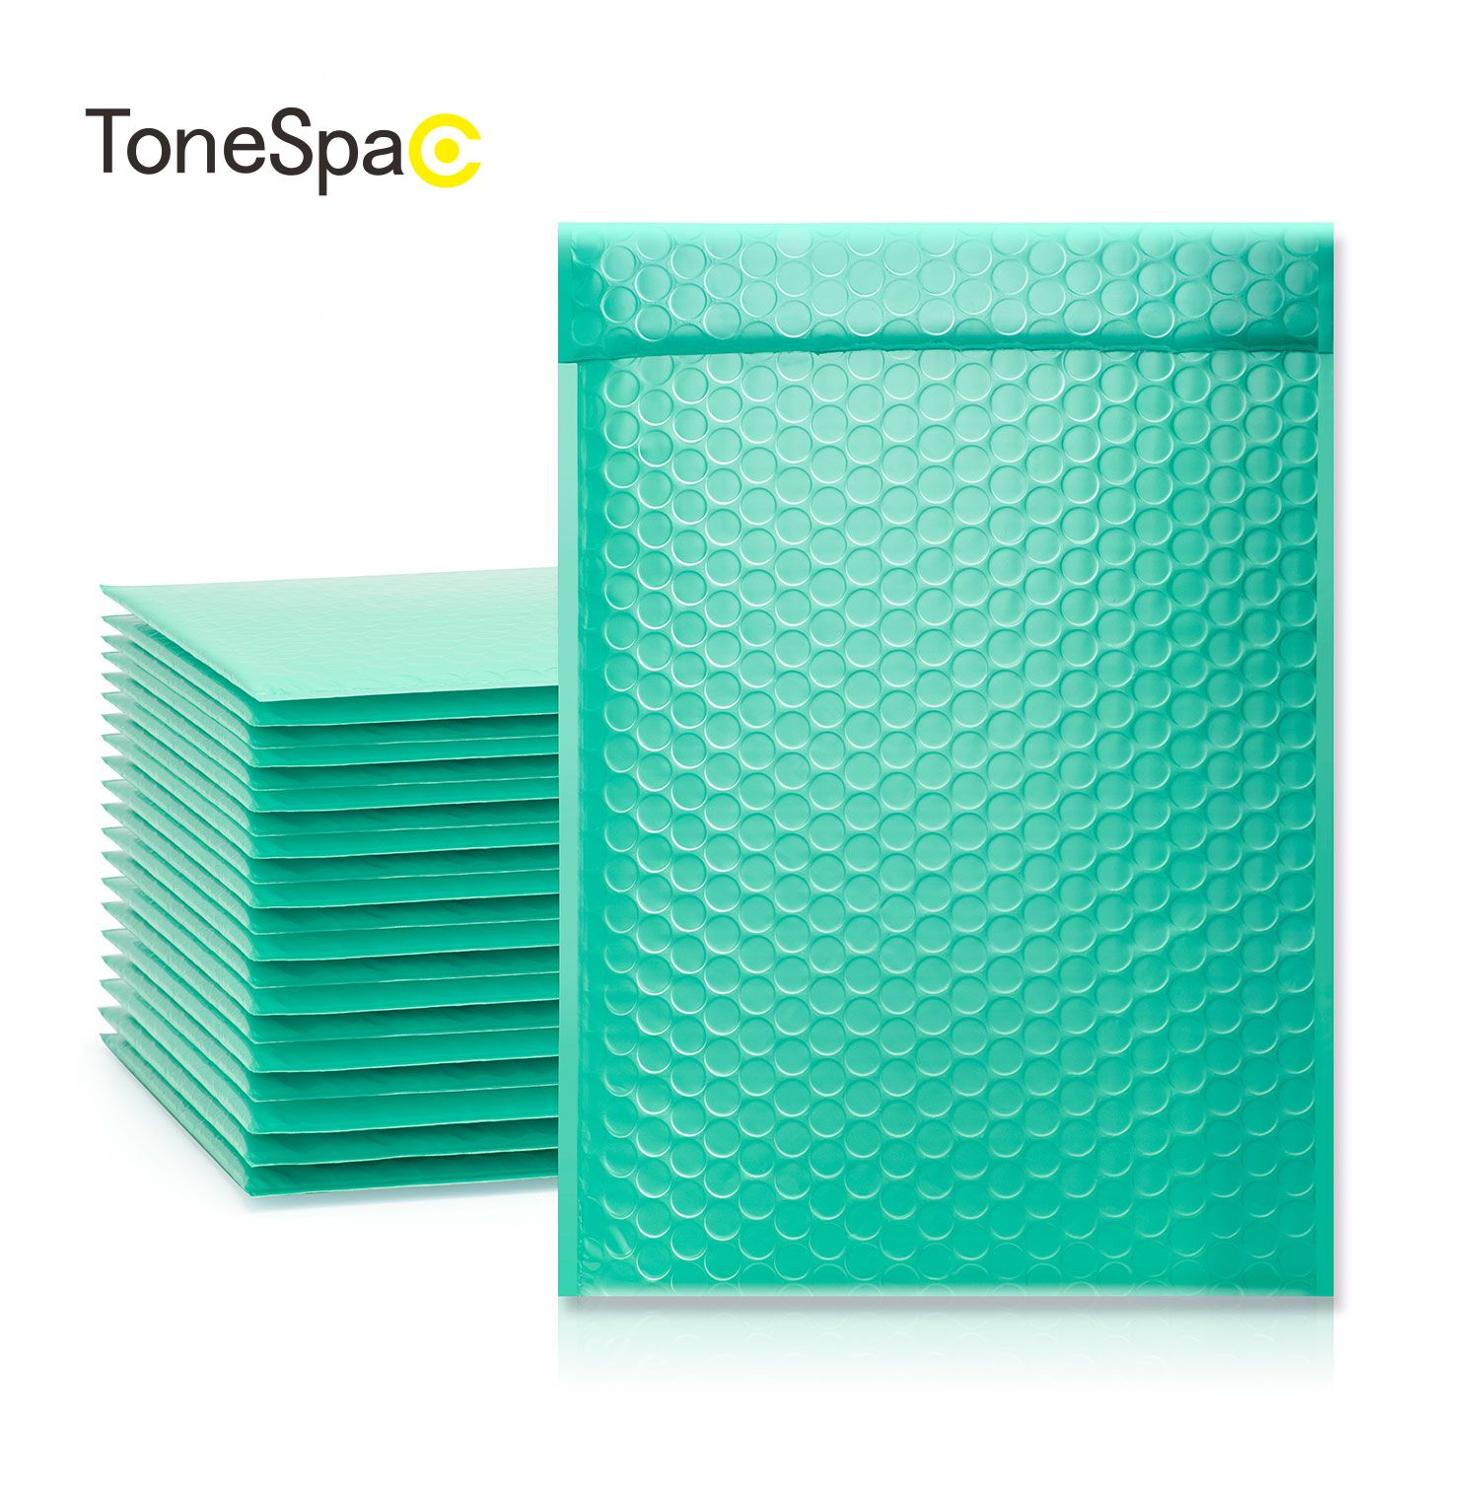 TONESPAC 190*260mm 50pcs Bubble Mailer Shipping Padded Envelope Self Seal Wrap Waterproof Mailing Packaging Bags Teal